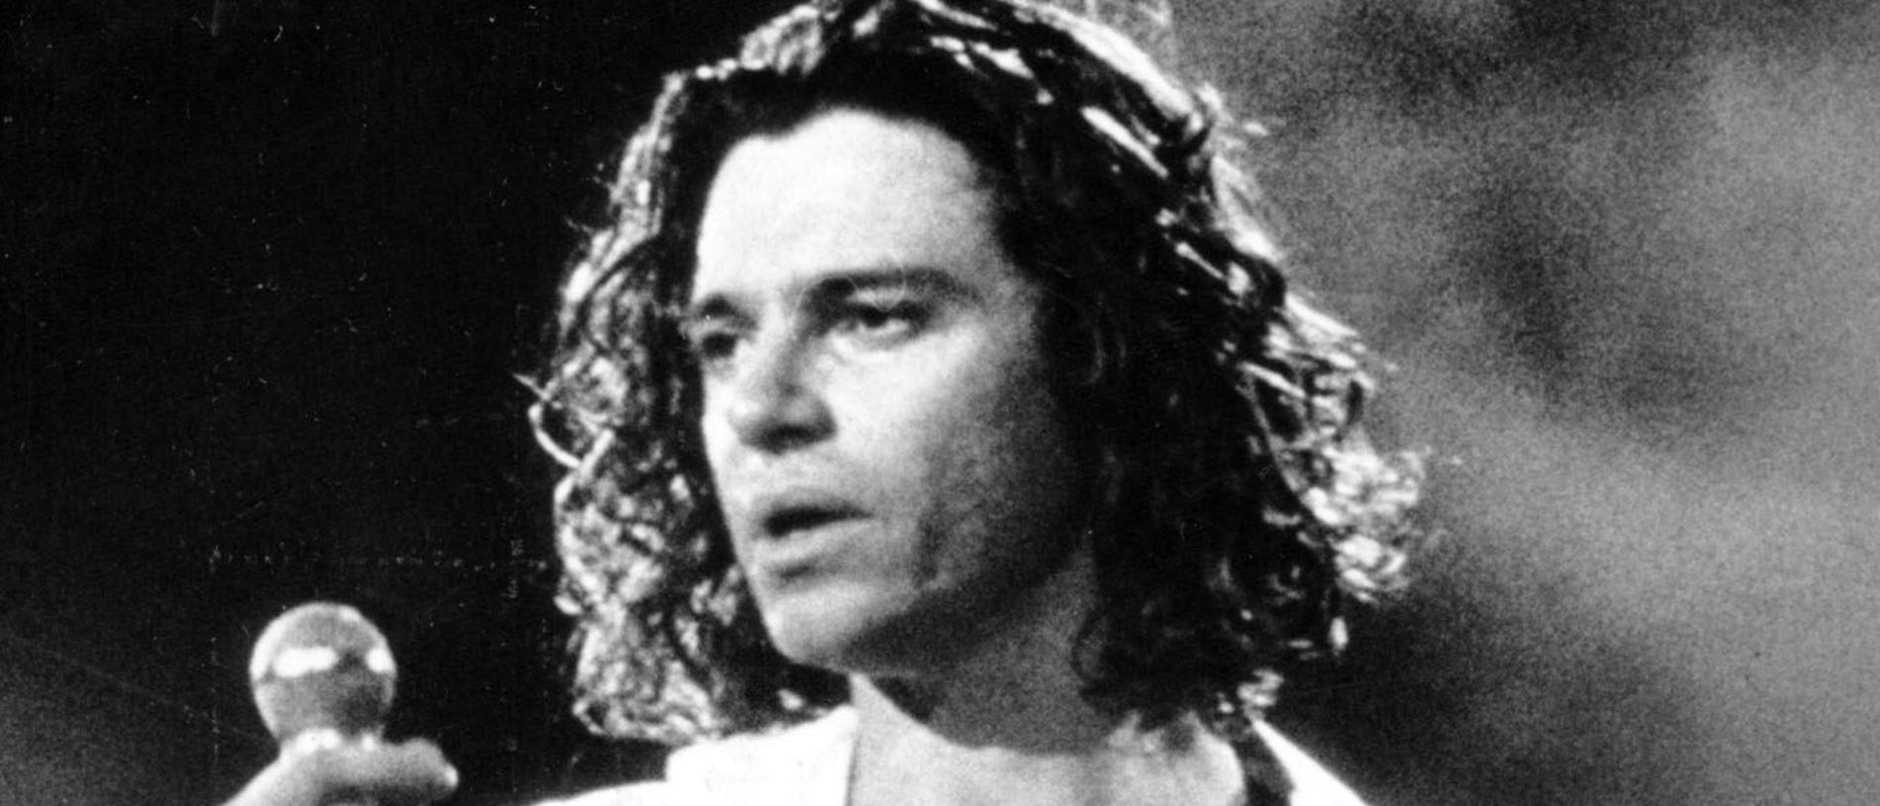 1992 : Singer Michael Hutchence from band INXS during a performance in Sydney in 1992. Pic News Limited. Historical Hutchence/Singer F/L INXS/Band